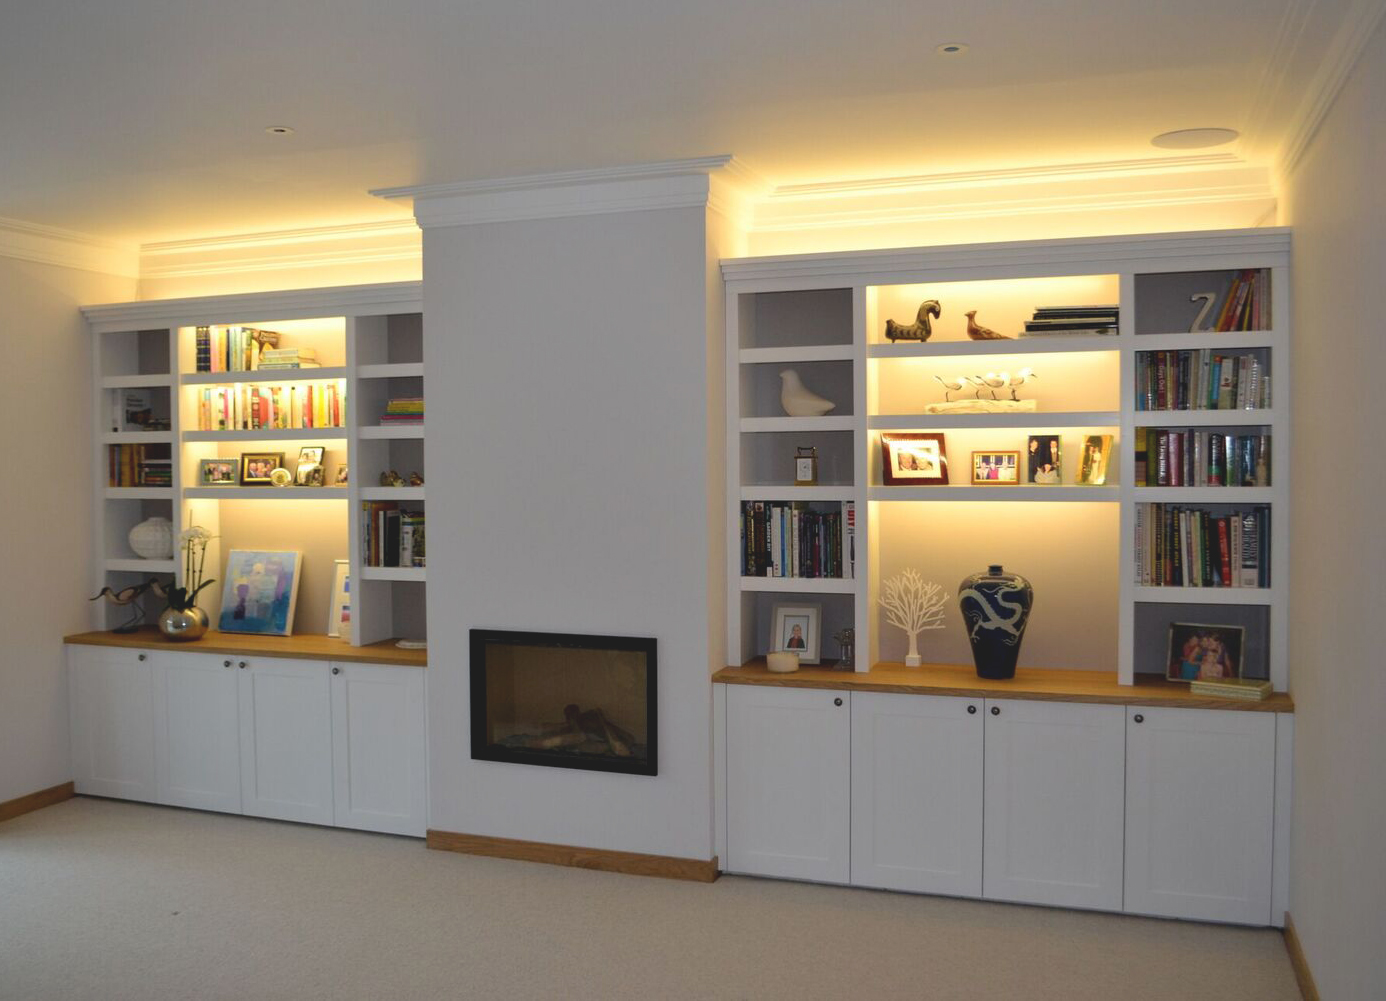 Handmade shelving and cupboards